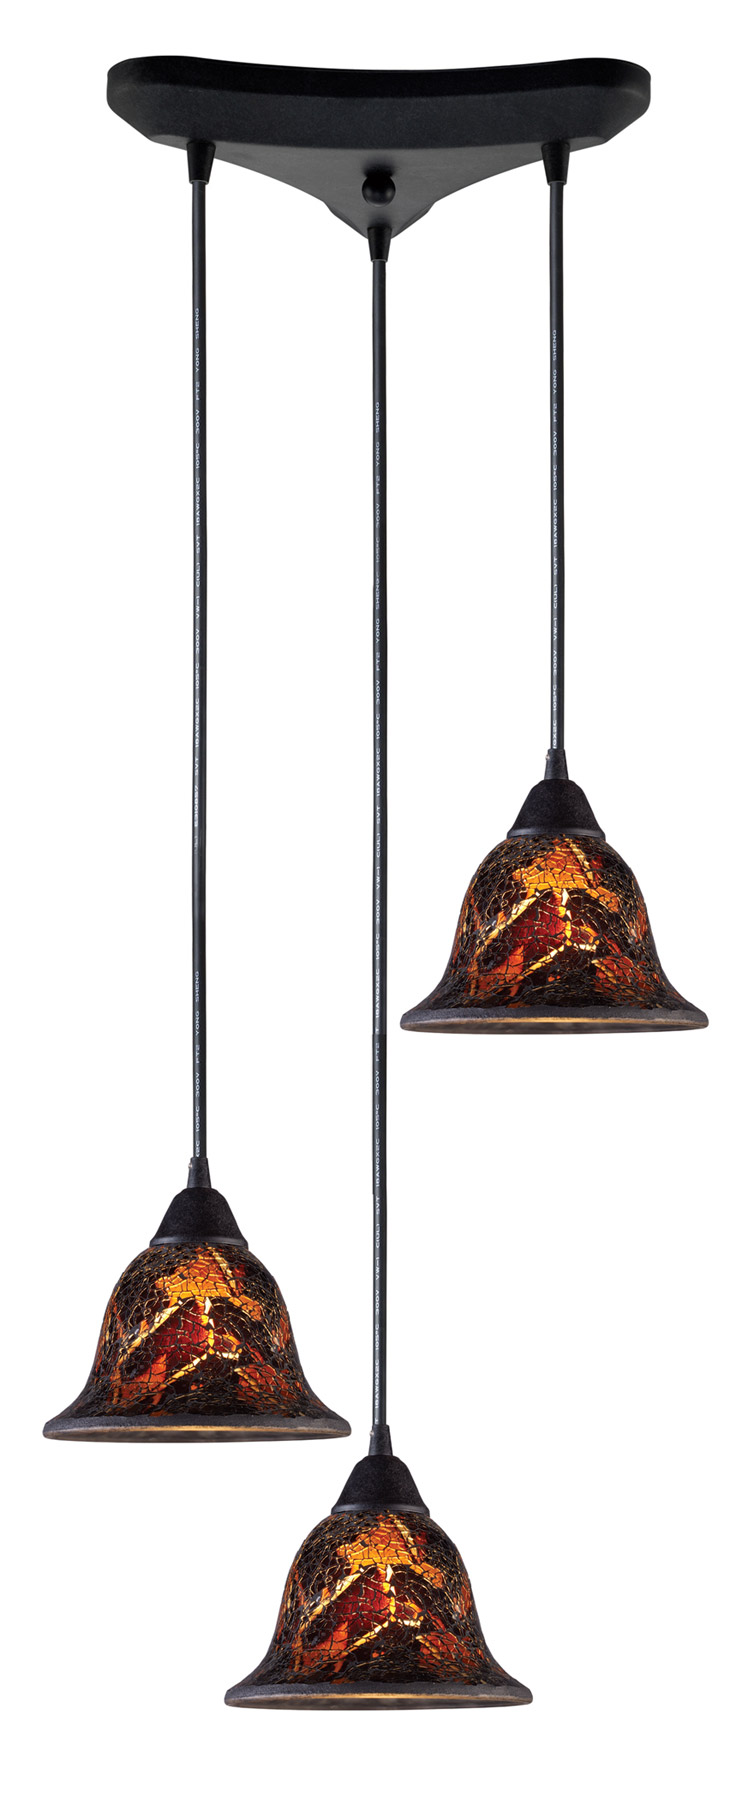 elk lighting pendant fixtures. elk lighting 10144/3fs firestorm multi pendant ceiling fixture fixtures s